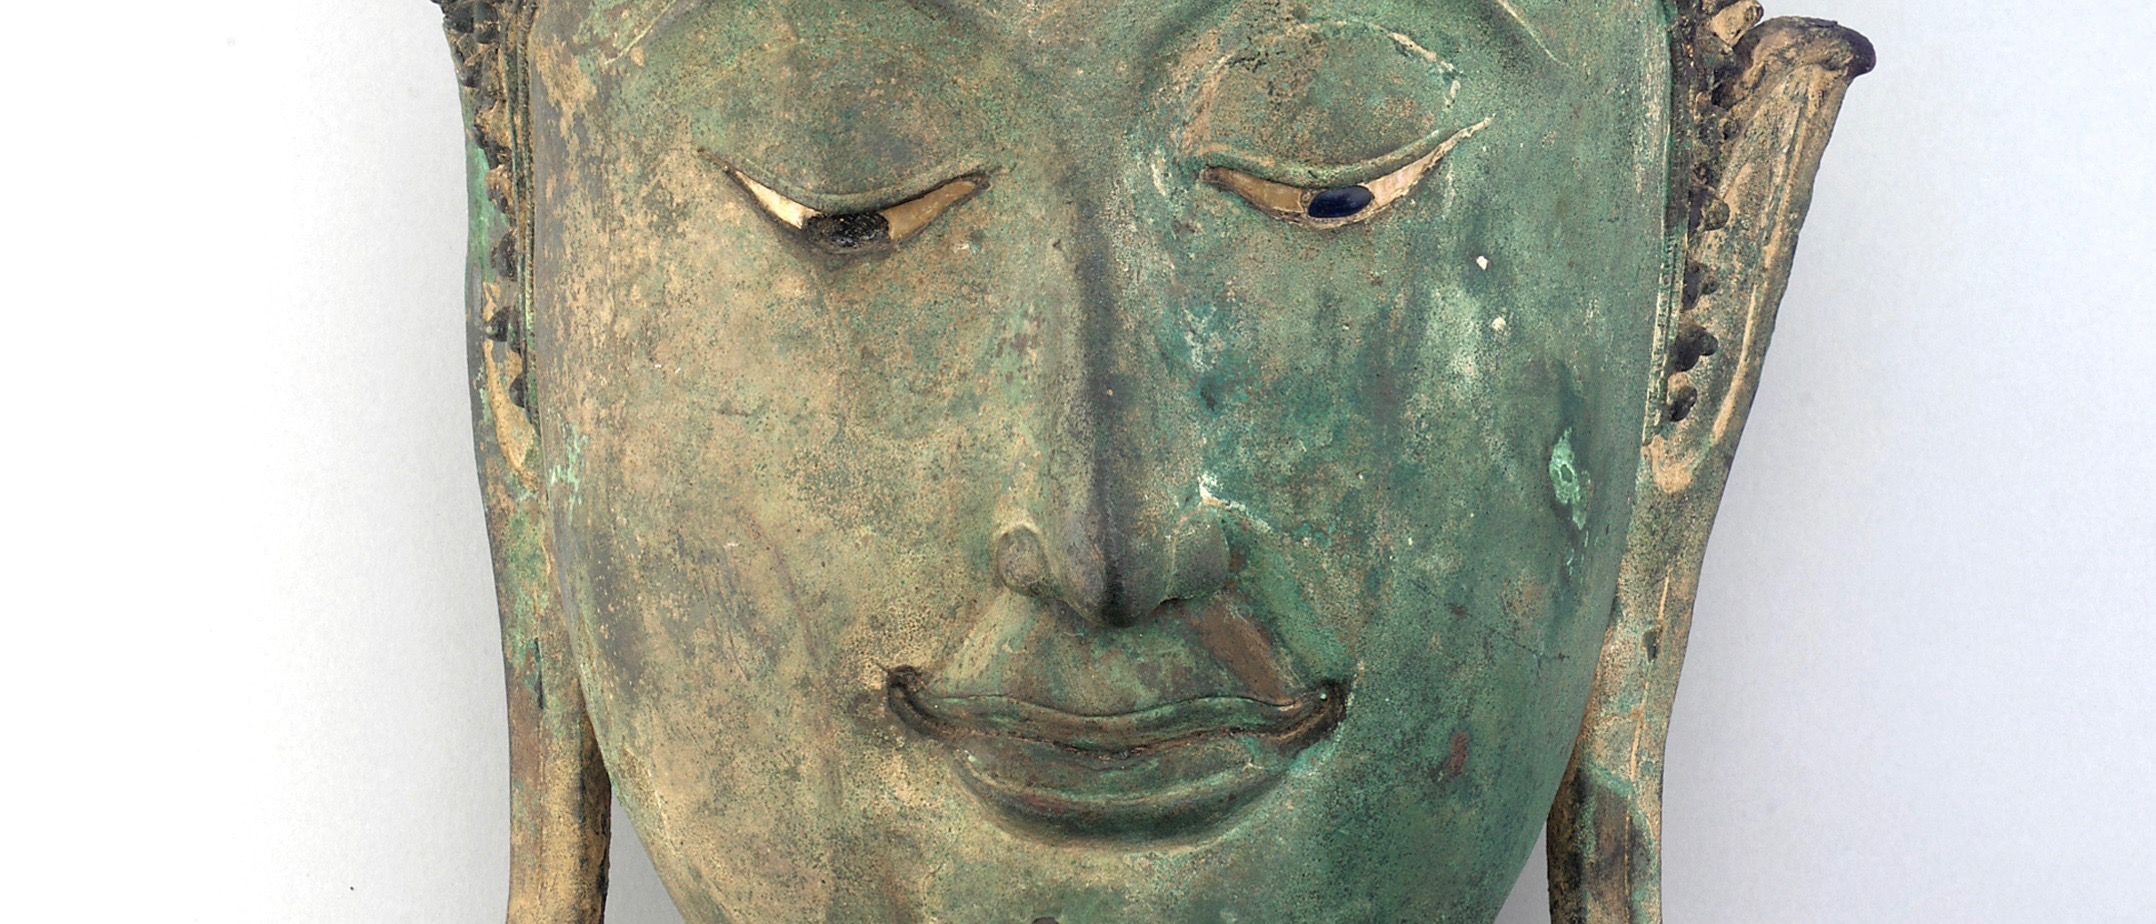 Sculpted head of a Buddha, made of bronze; its expression is plaintive, looking downward